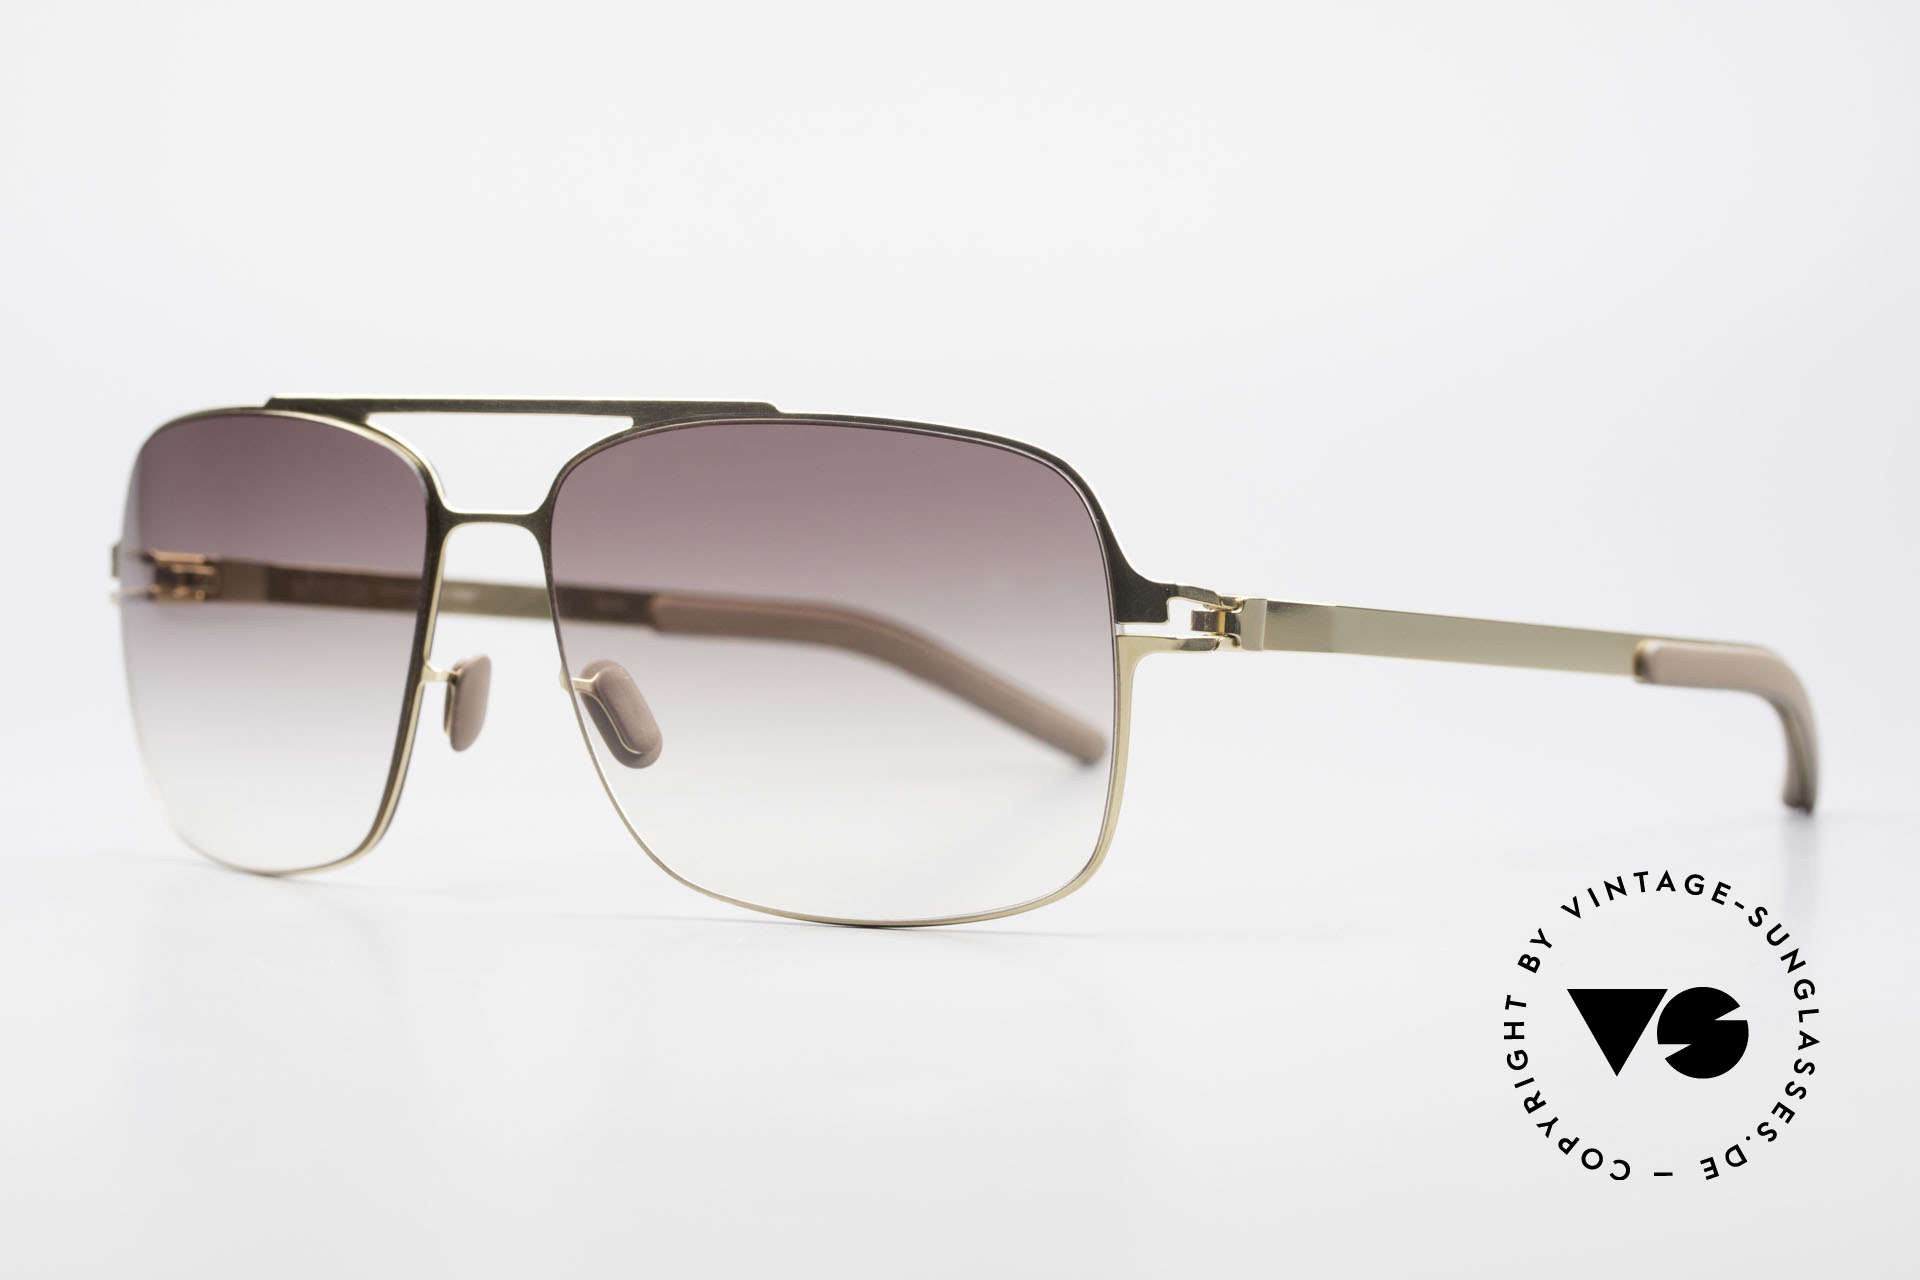 Mykita Troy Mykita Collection No 1 Shades, Collection No.1 Troy Glossygold, brown-gradient, 58/15, Made for Men